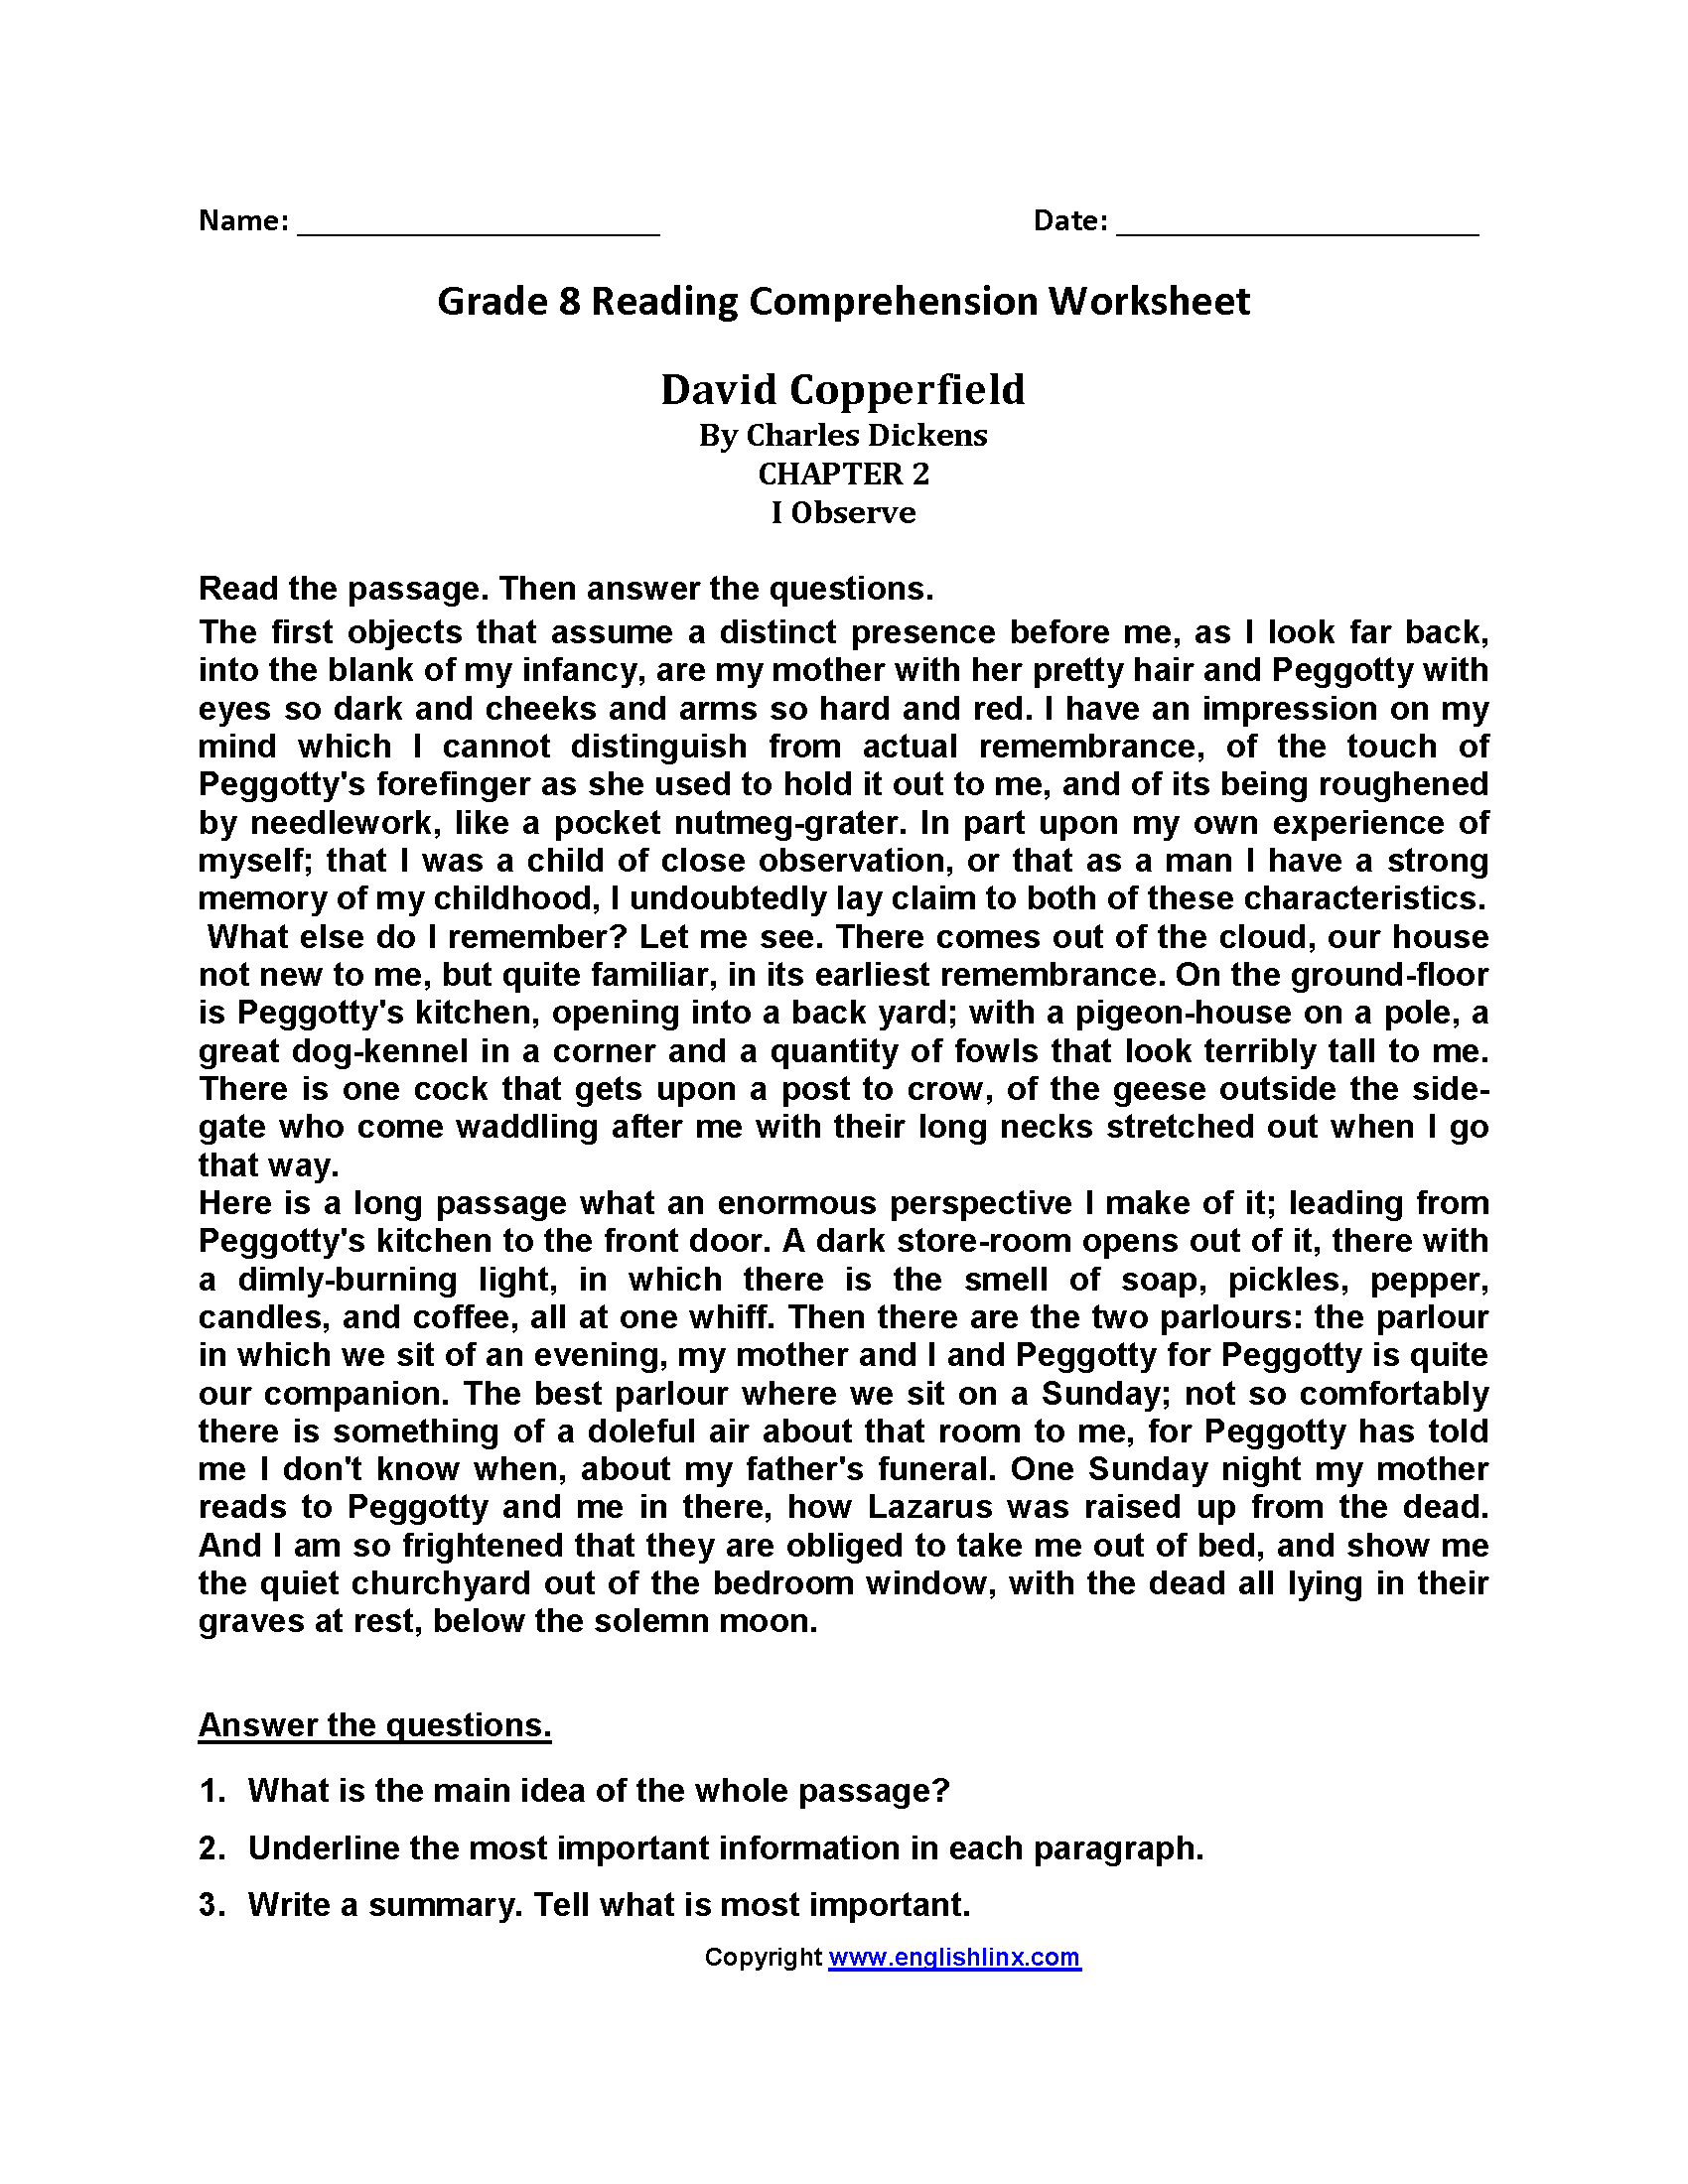 Worksheets Reading Worksheets 8th Grade david copperfield eighth grade reading worksheets school idea comprehension ideas